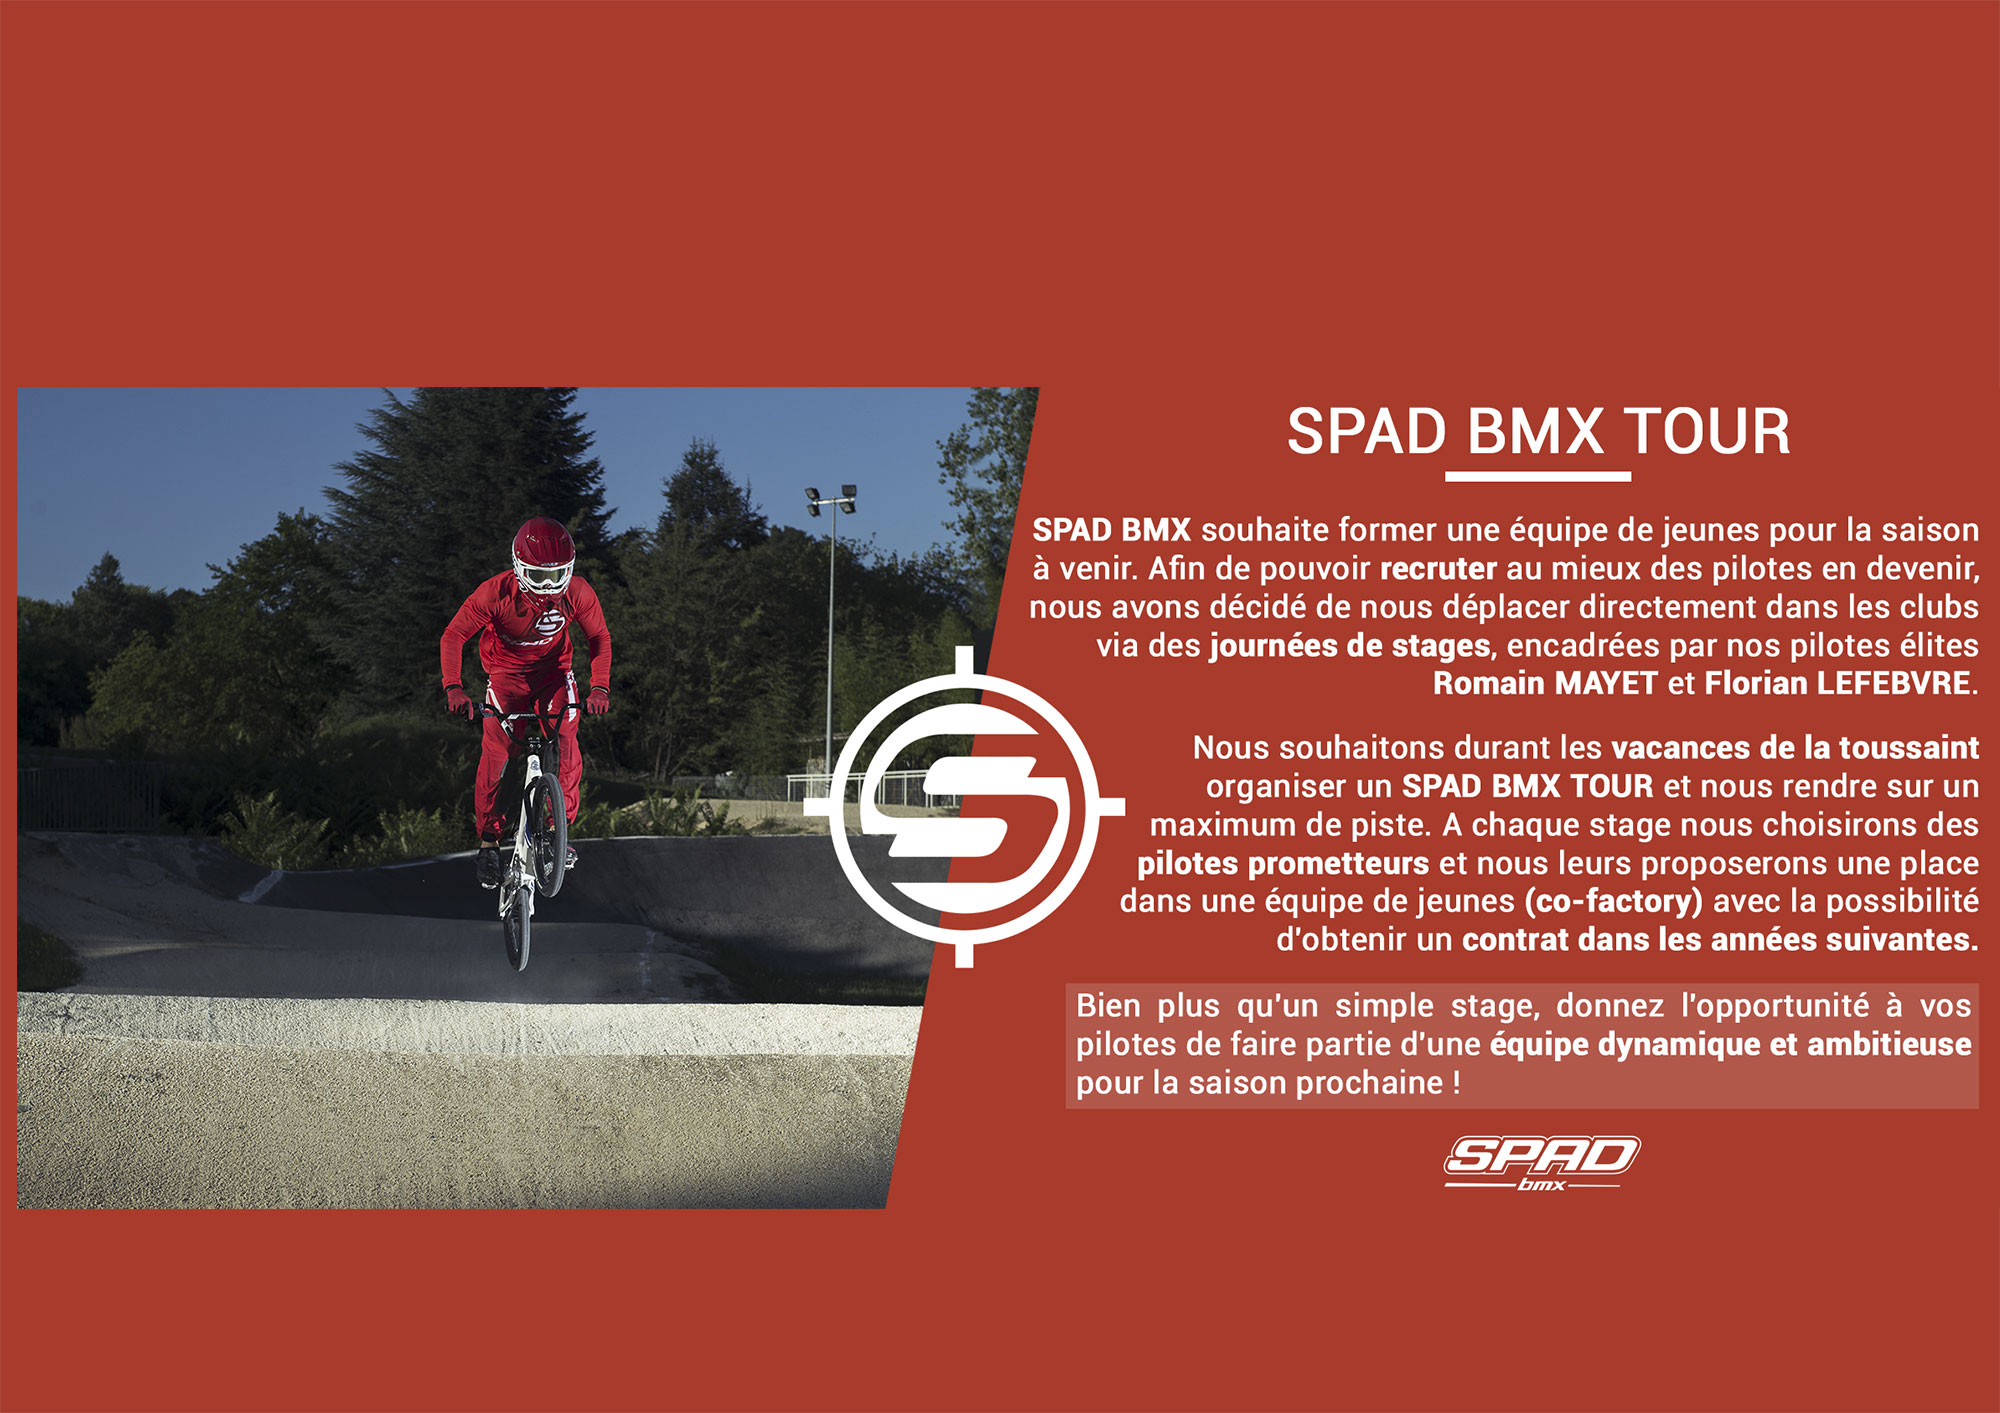 Des stages SPAD BMX pour devenir pilote Co-Factory